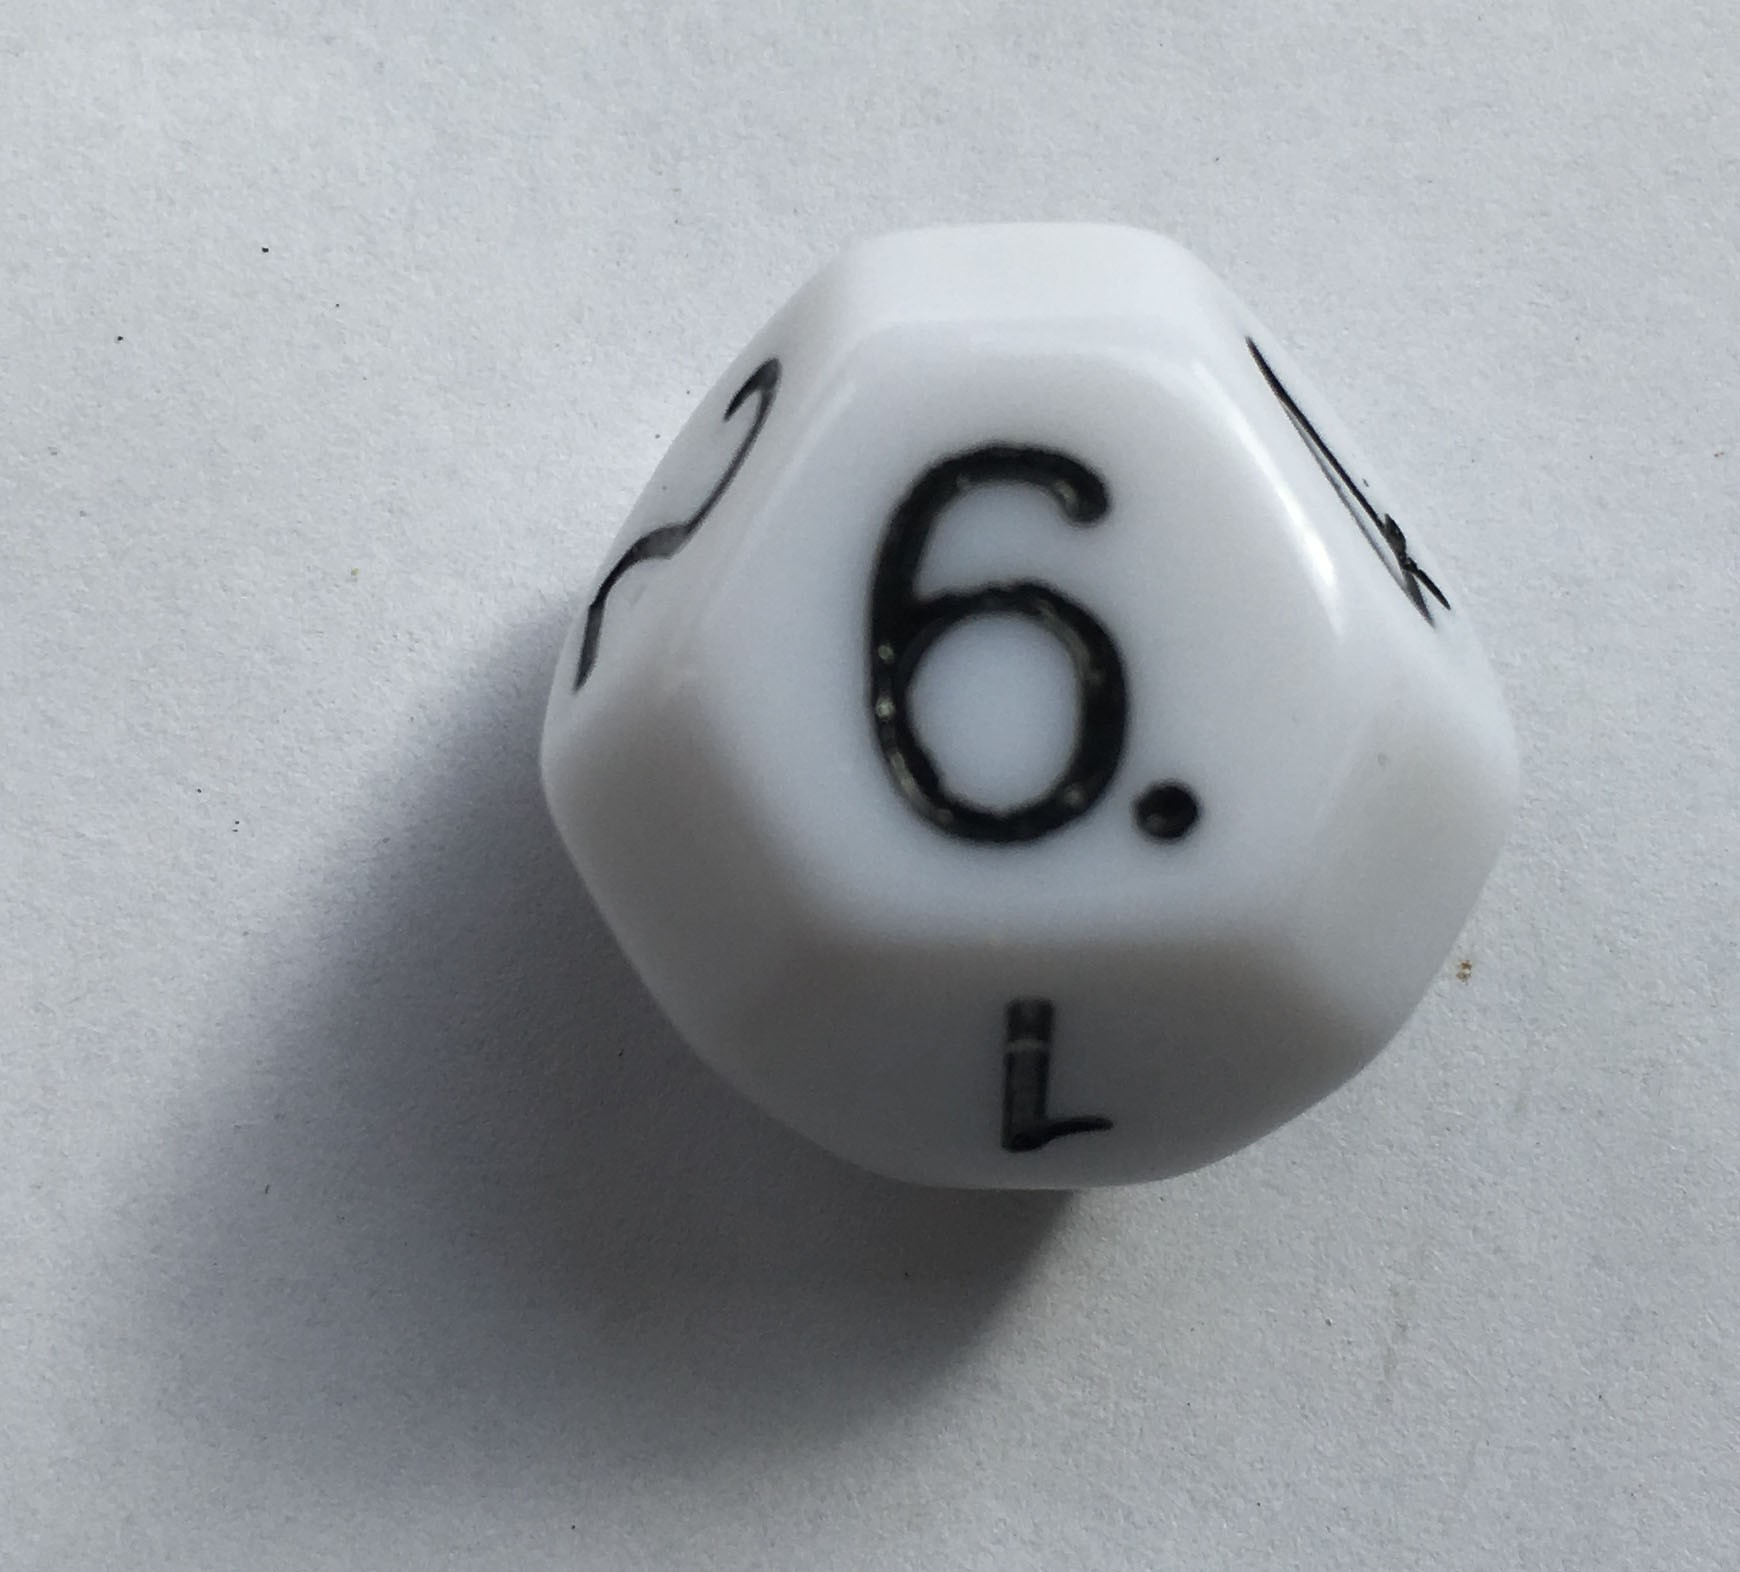 Truncated Octahedral 8 Sided Die (Single D8 Die)